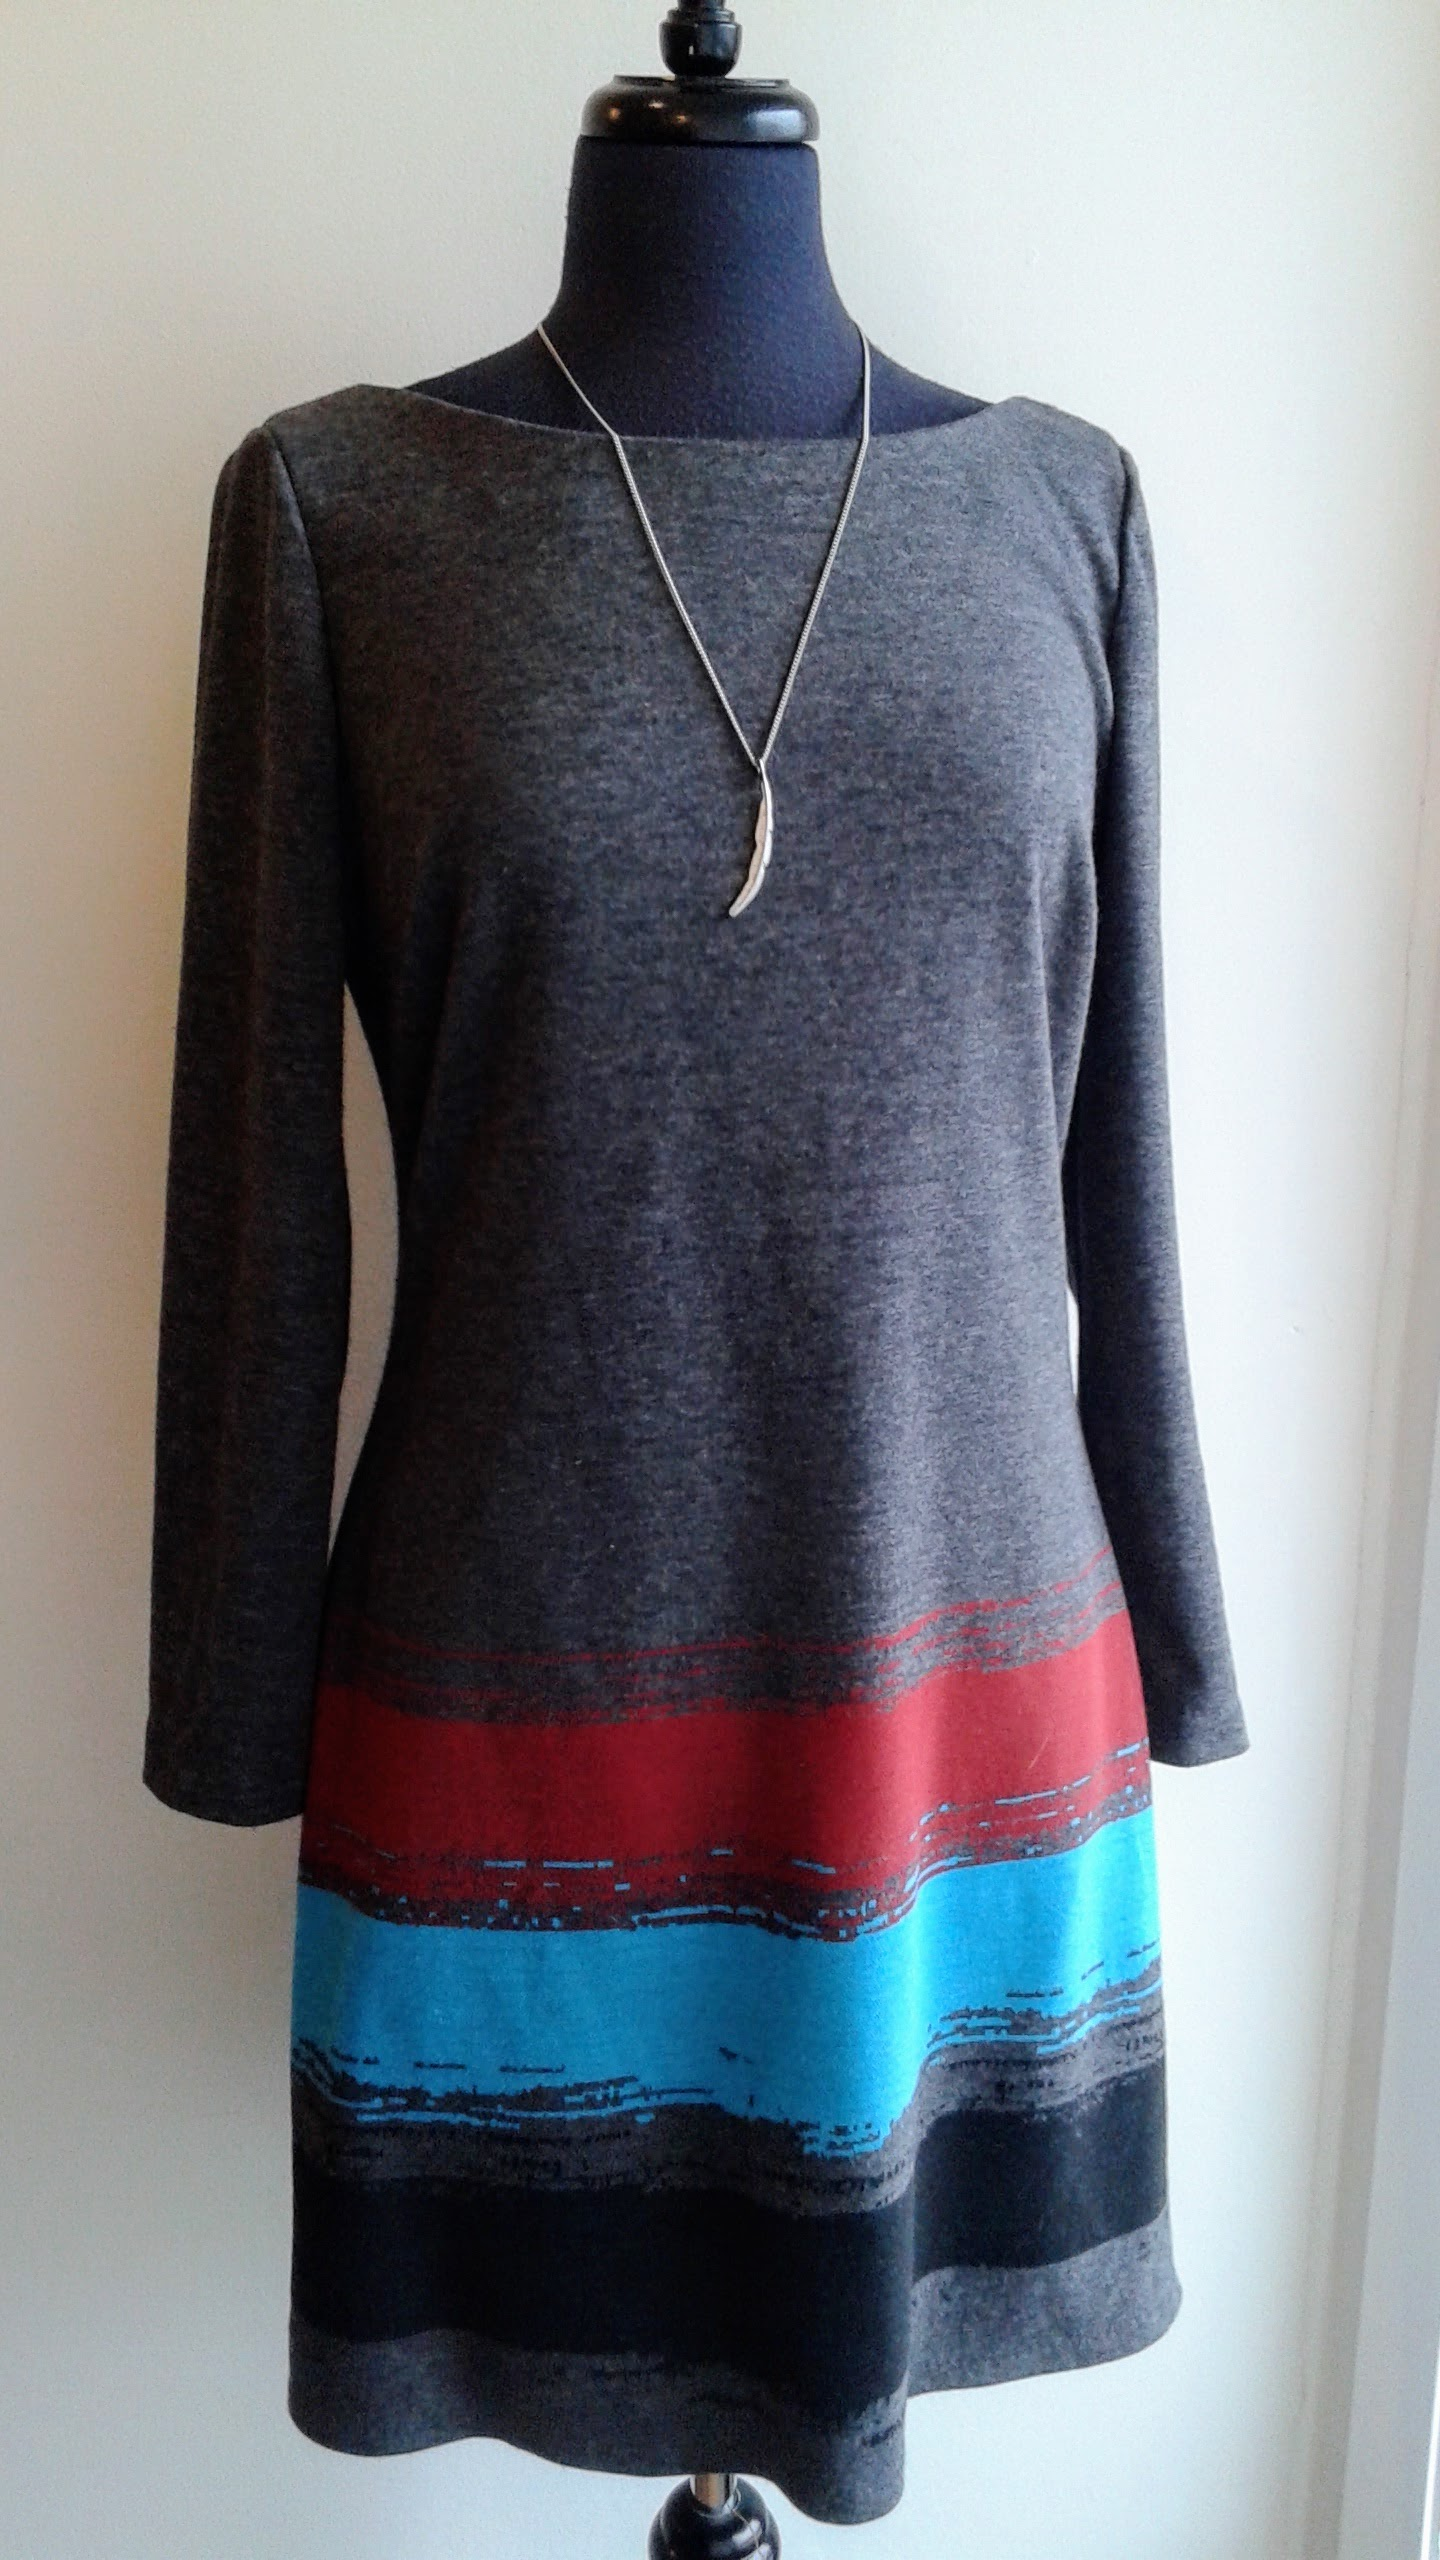 Tracy Reese dress; Size M, $42. Feather necklace, $14